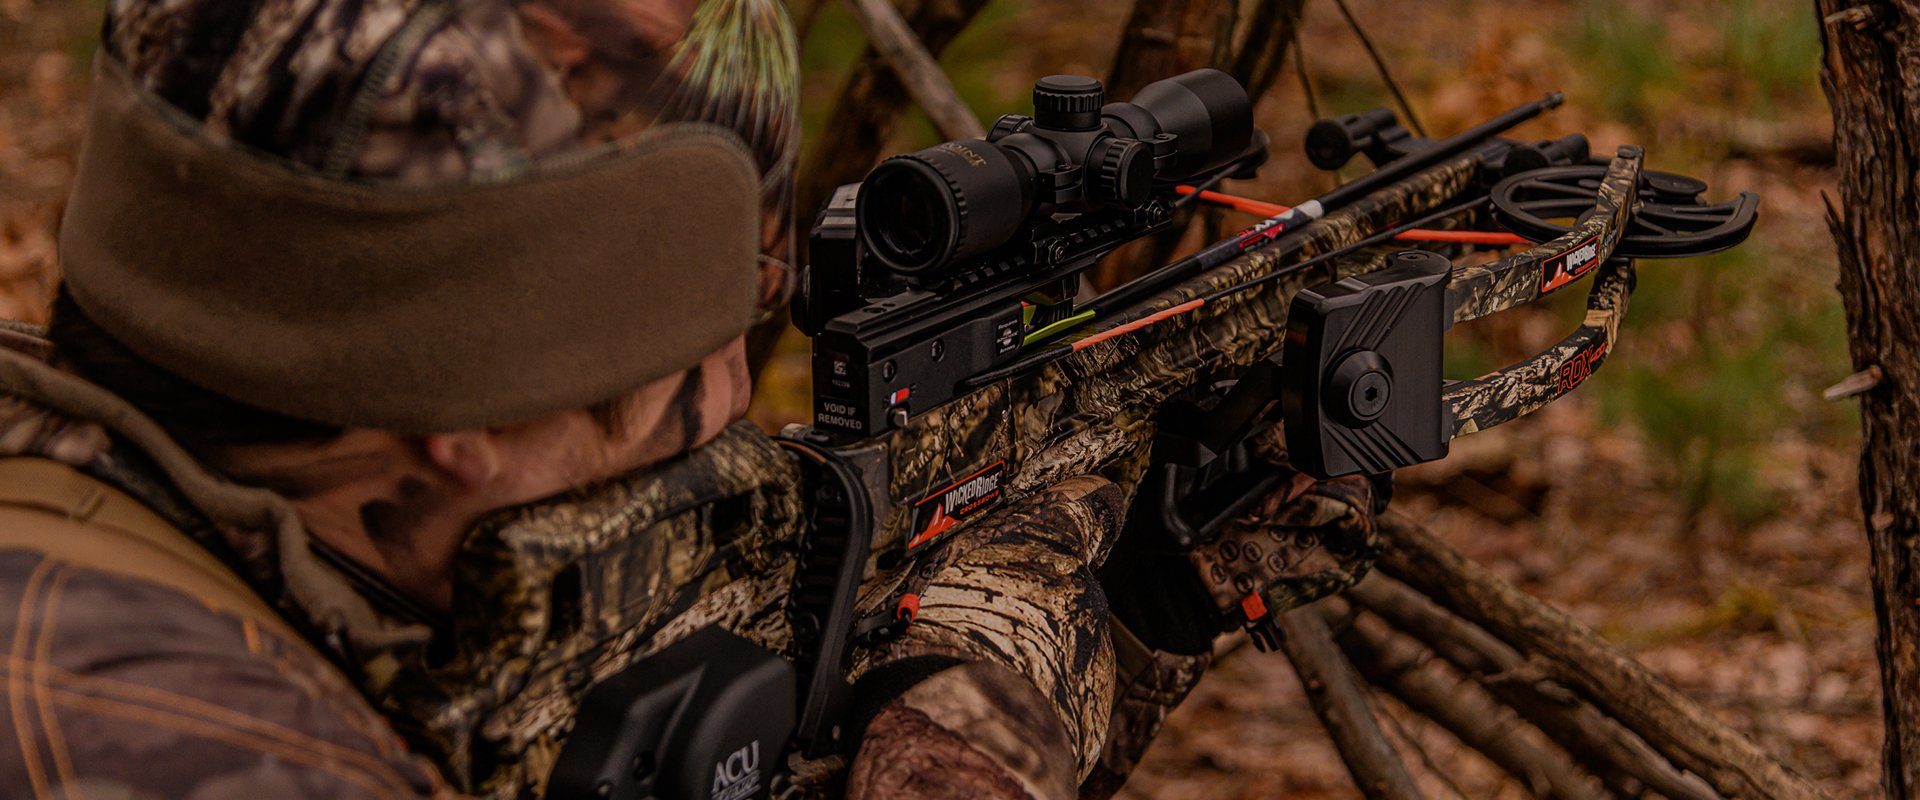 RDX 400 Crossbow in the Woods